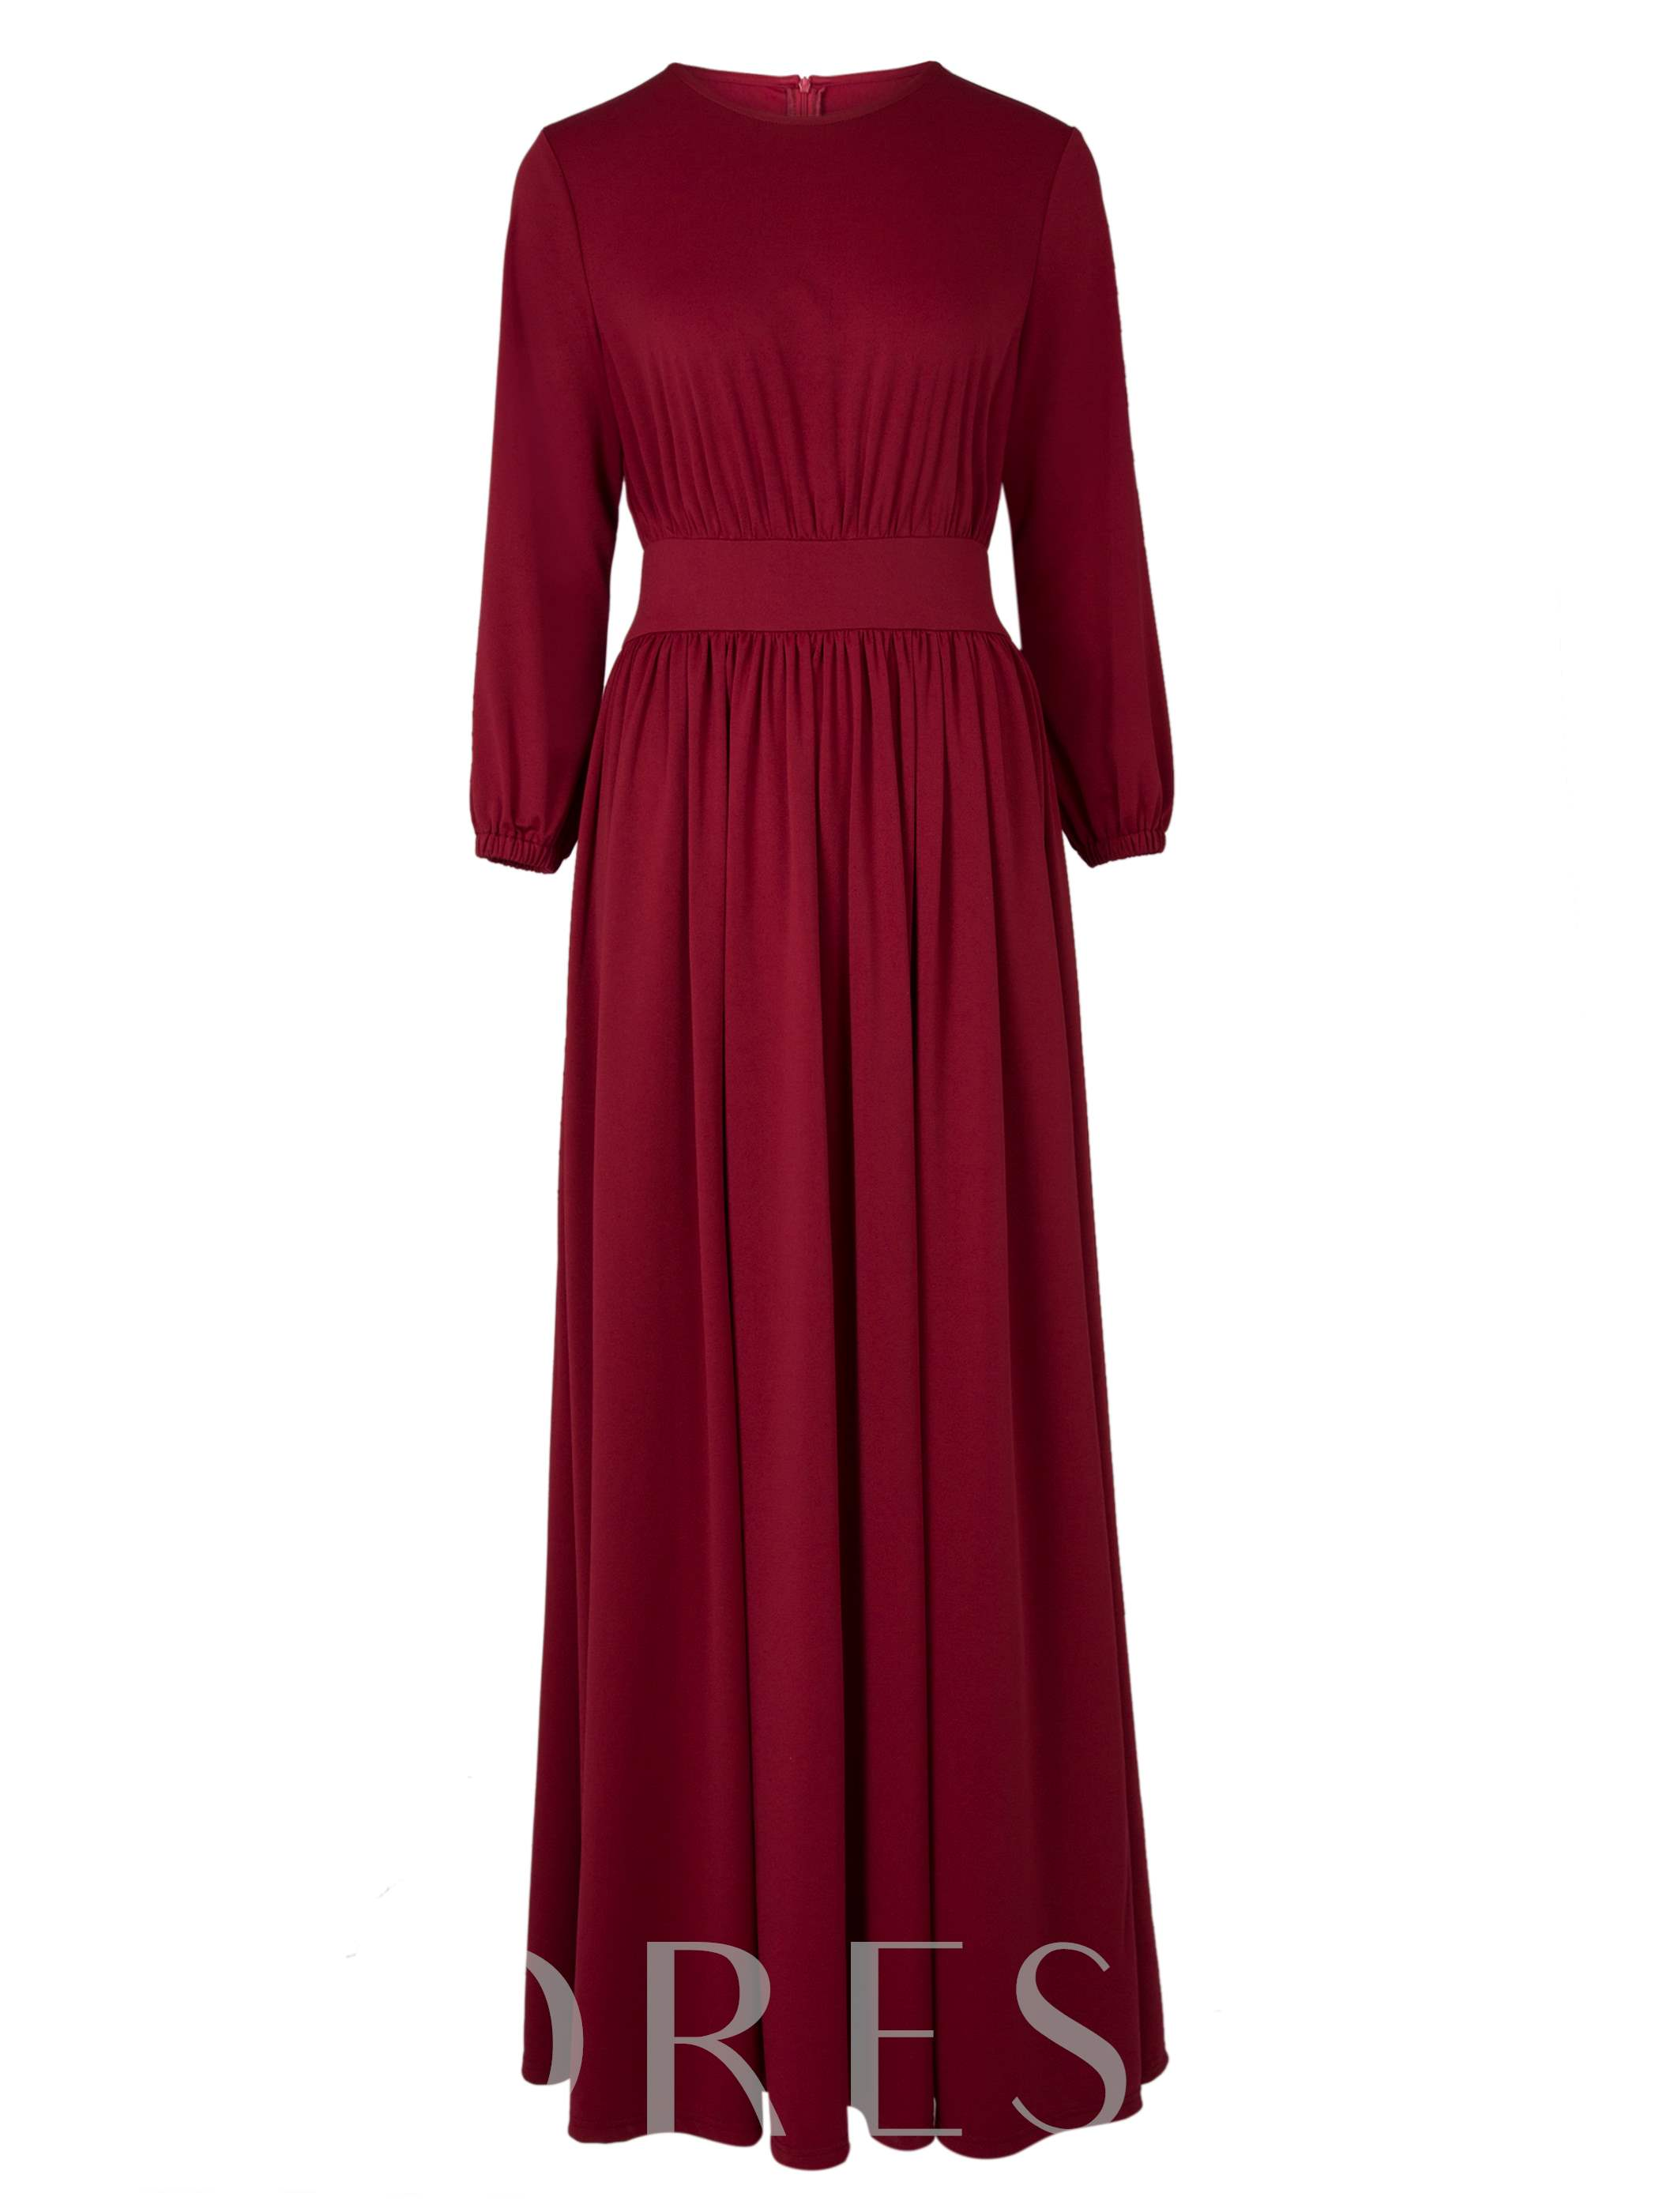 Buy Burgundy Long Sleeve Pleated Women's Maxi Dress, Clocolor, 12997232 for $20.99 in TBDress store